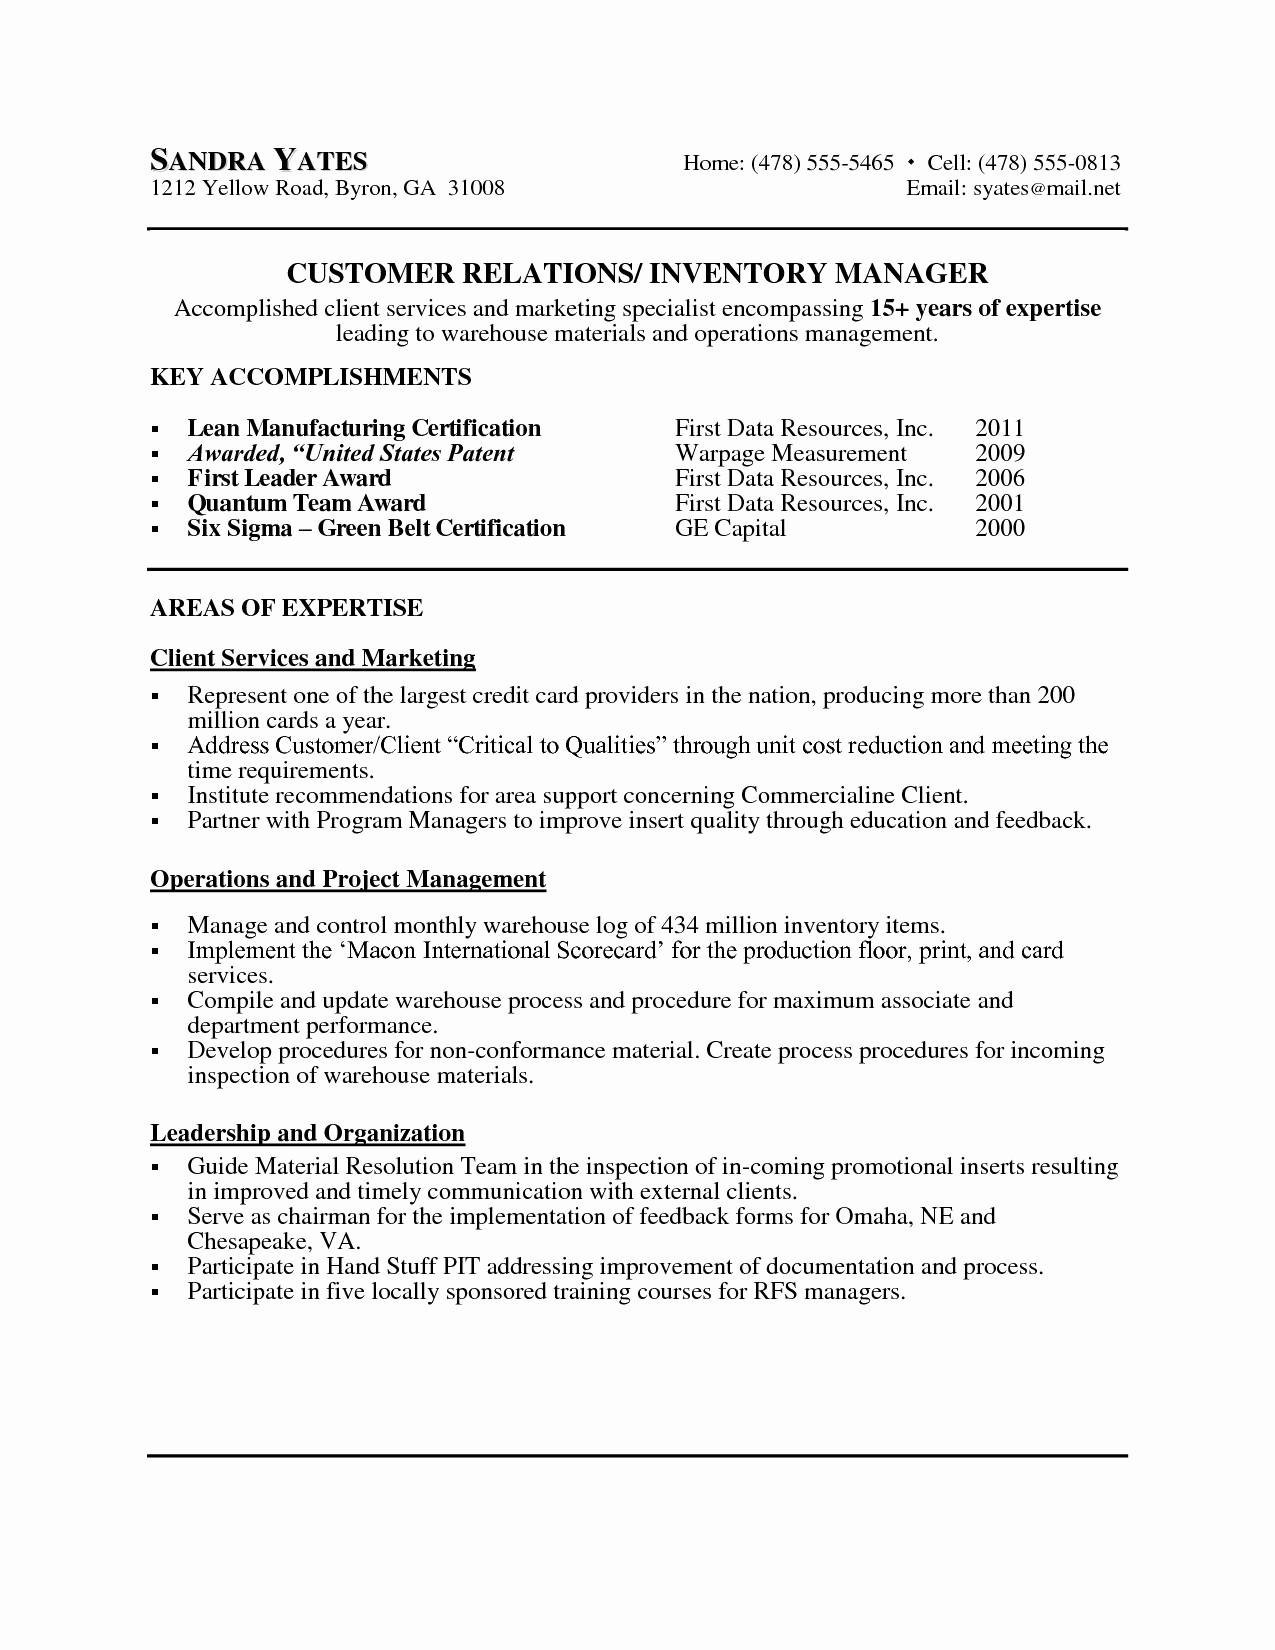 Email Template for Letter Of Recommendation - Business Email Template Examples Best New Graphy Resume New Free